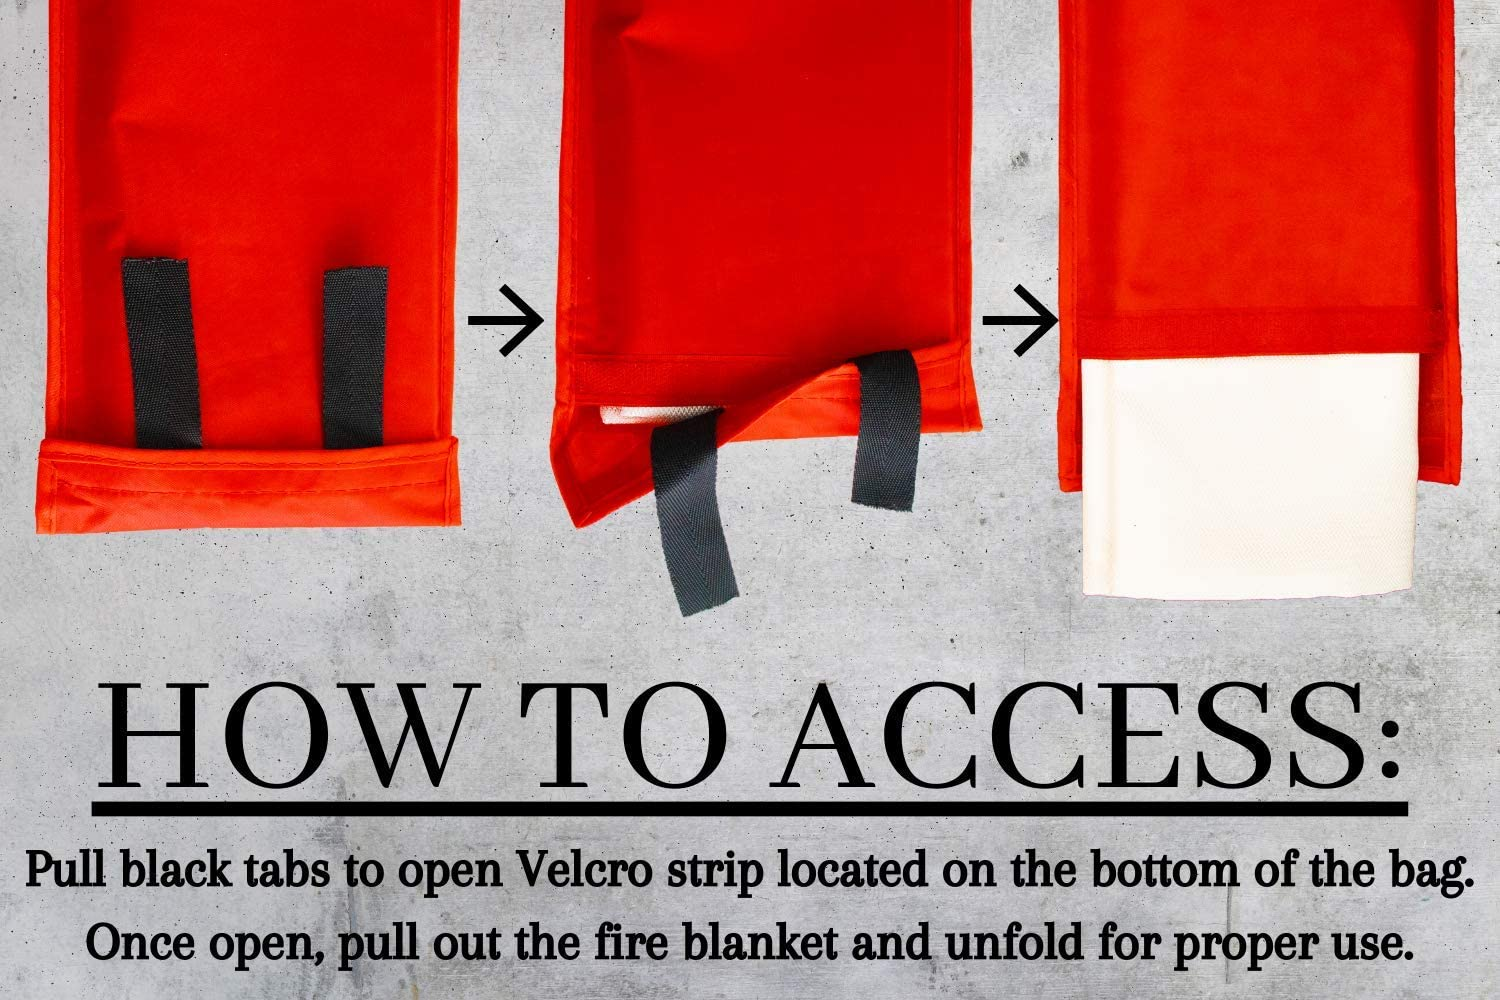 ATX 2 Pack Fire Blanket//Fireproof Blankets for Emergency//Fiberglass Safety Fire Retardant Blanket in Wall Hanging Bag//Home Fireplace Kitchen Stove and Grill Grease Fires Online Retailers FBA